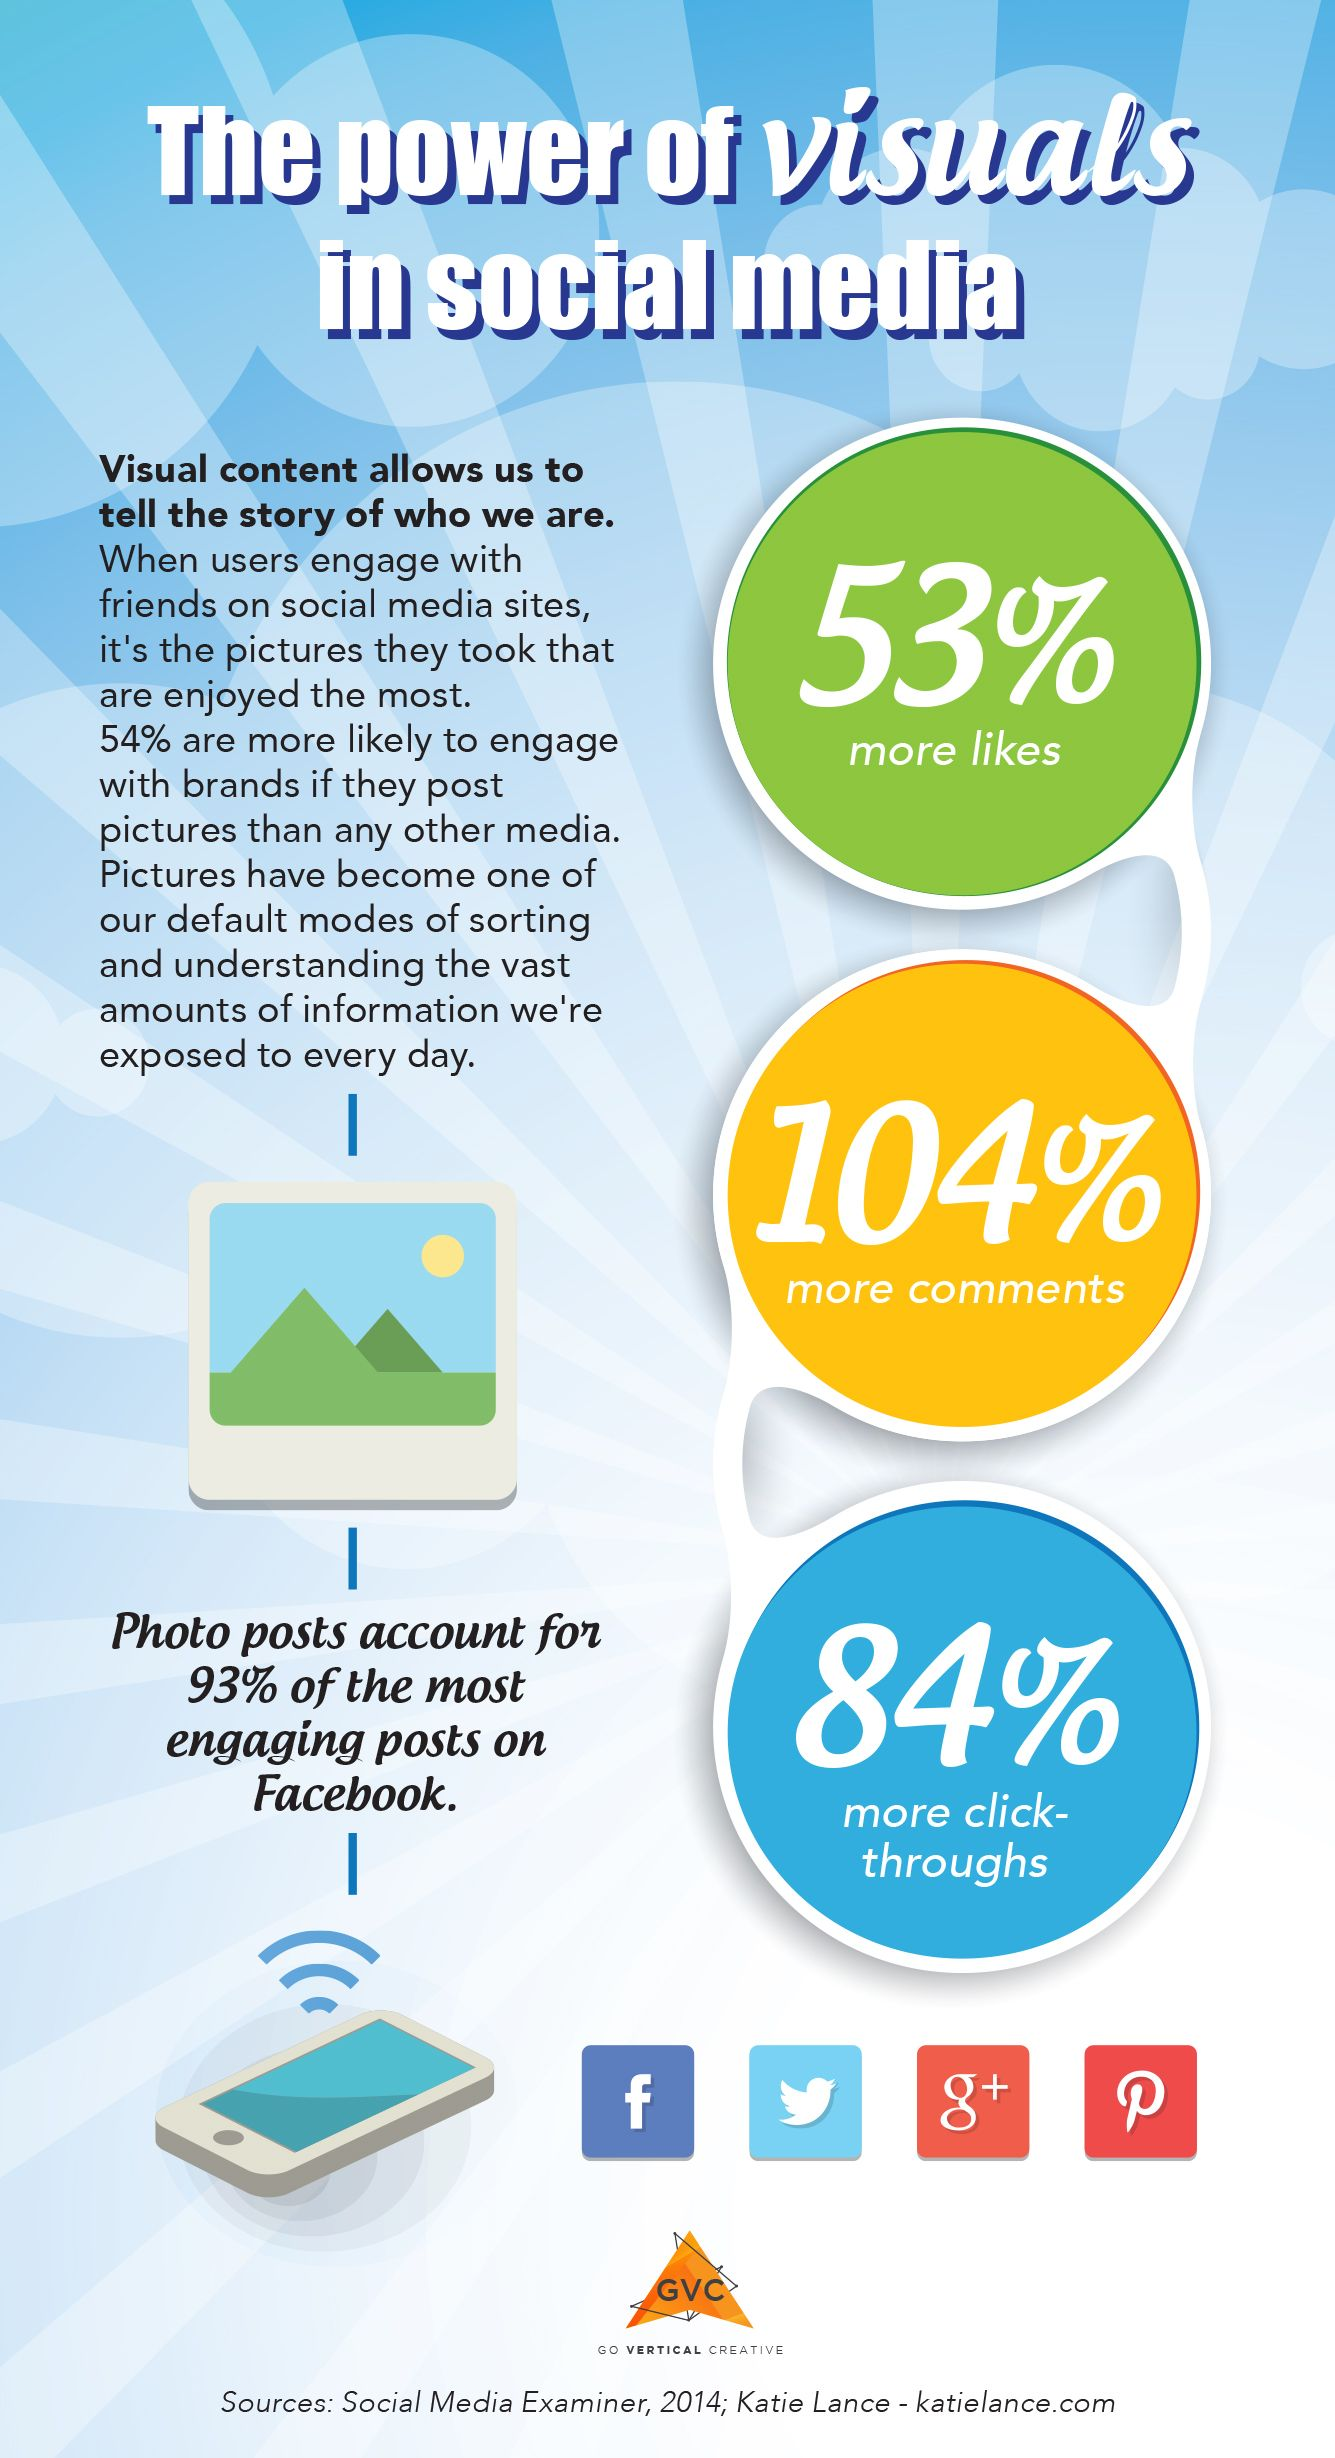 The power of visuals in social media #infographic